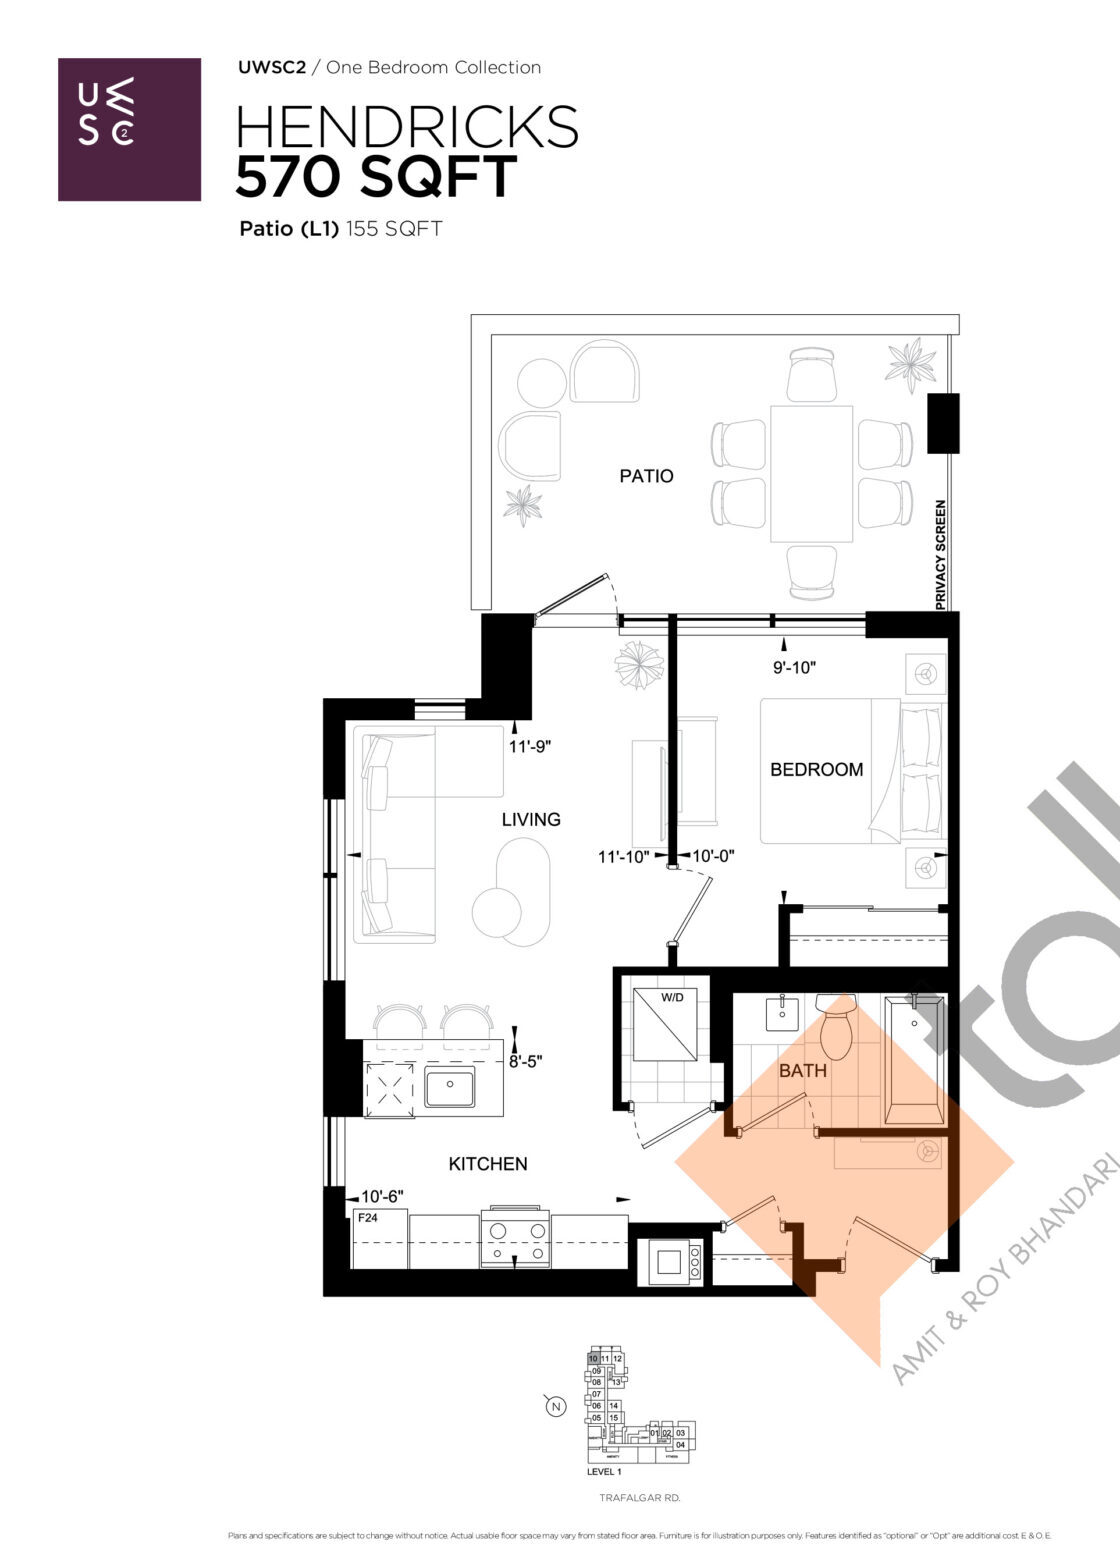 Hendricks Floor Plan at Upper West Side Condos 2 - 570 sq.ft